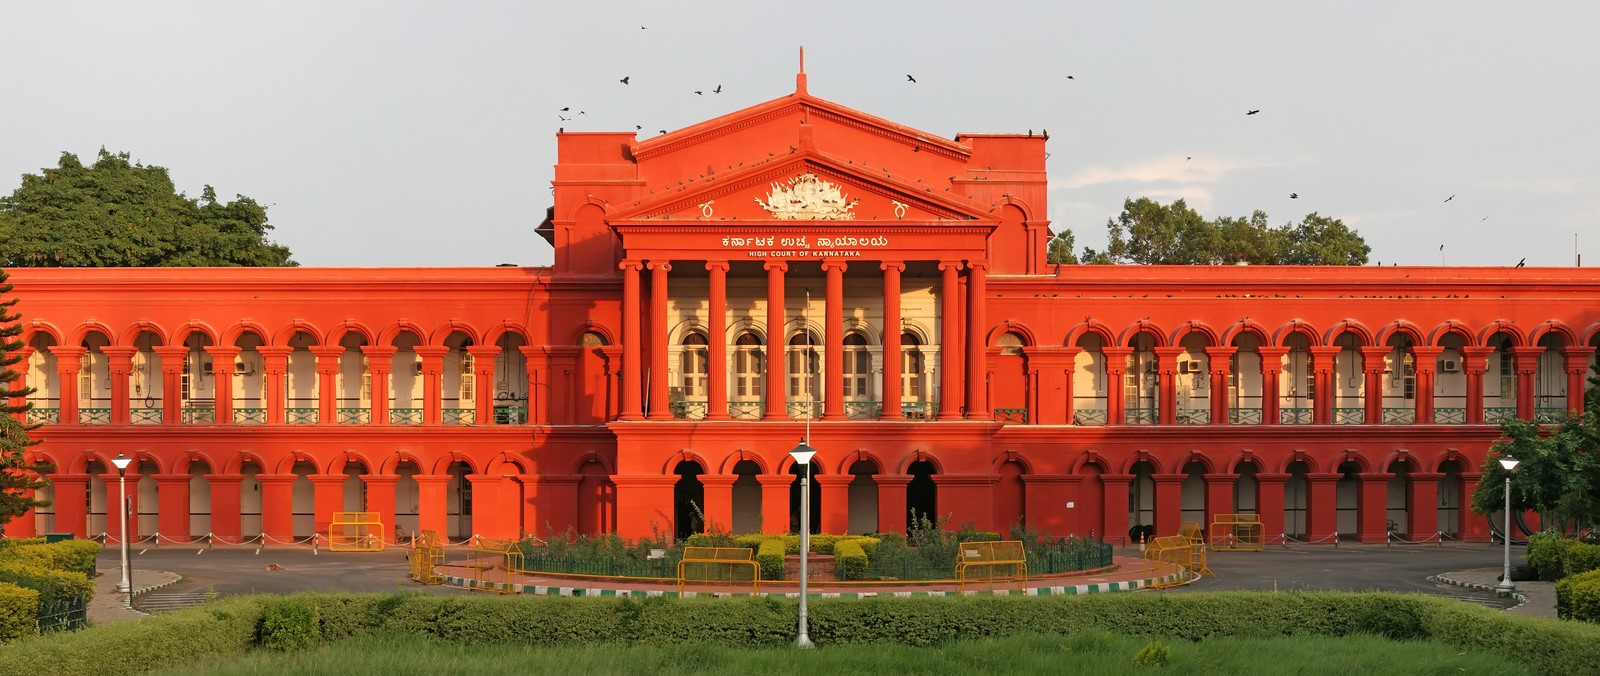 Places to visit in Bangalore for the Travelling Architect -Bangalore Highcourt - Sheet1